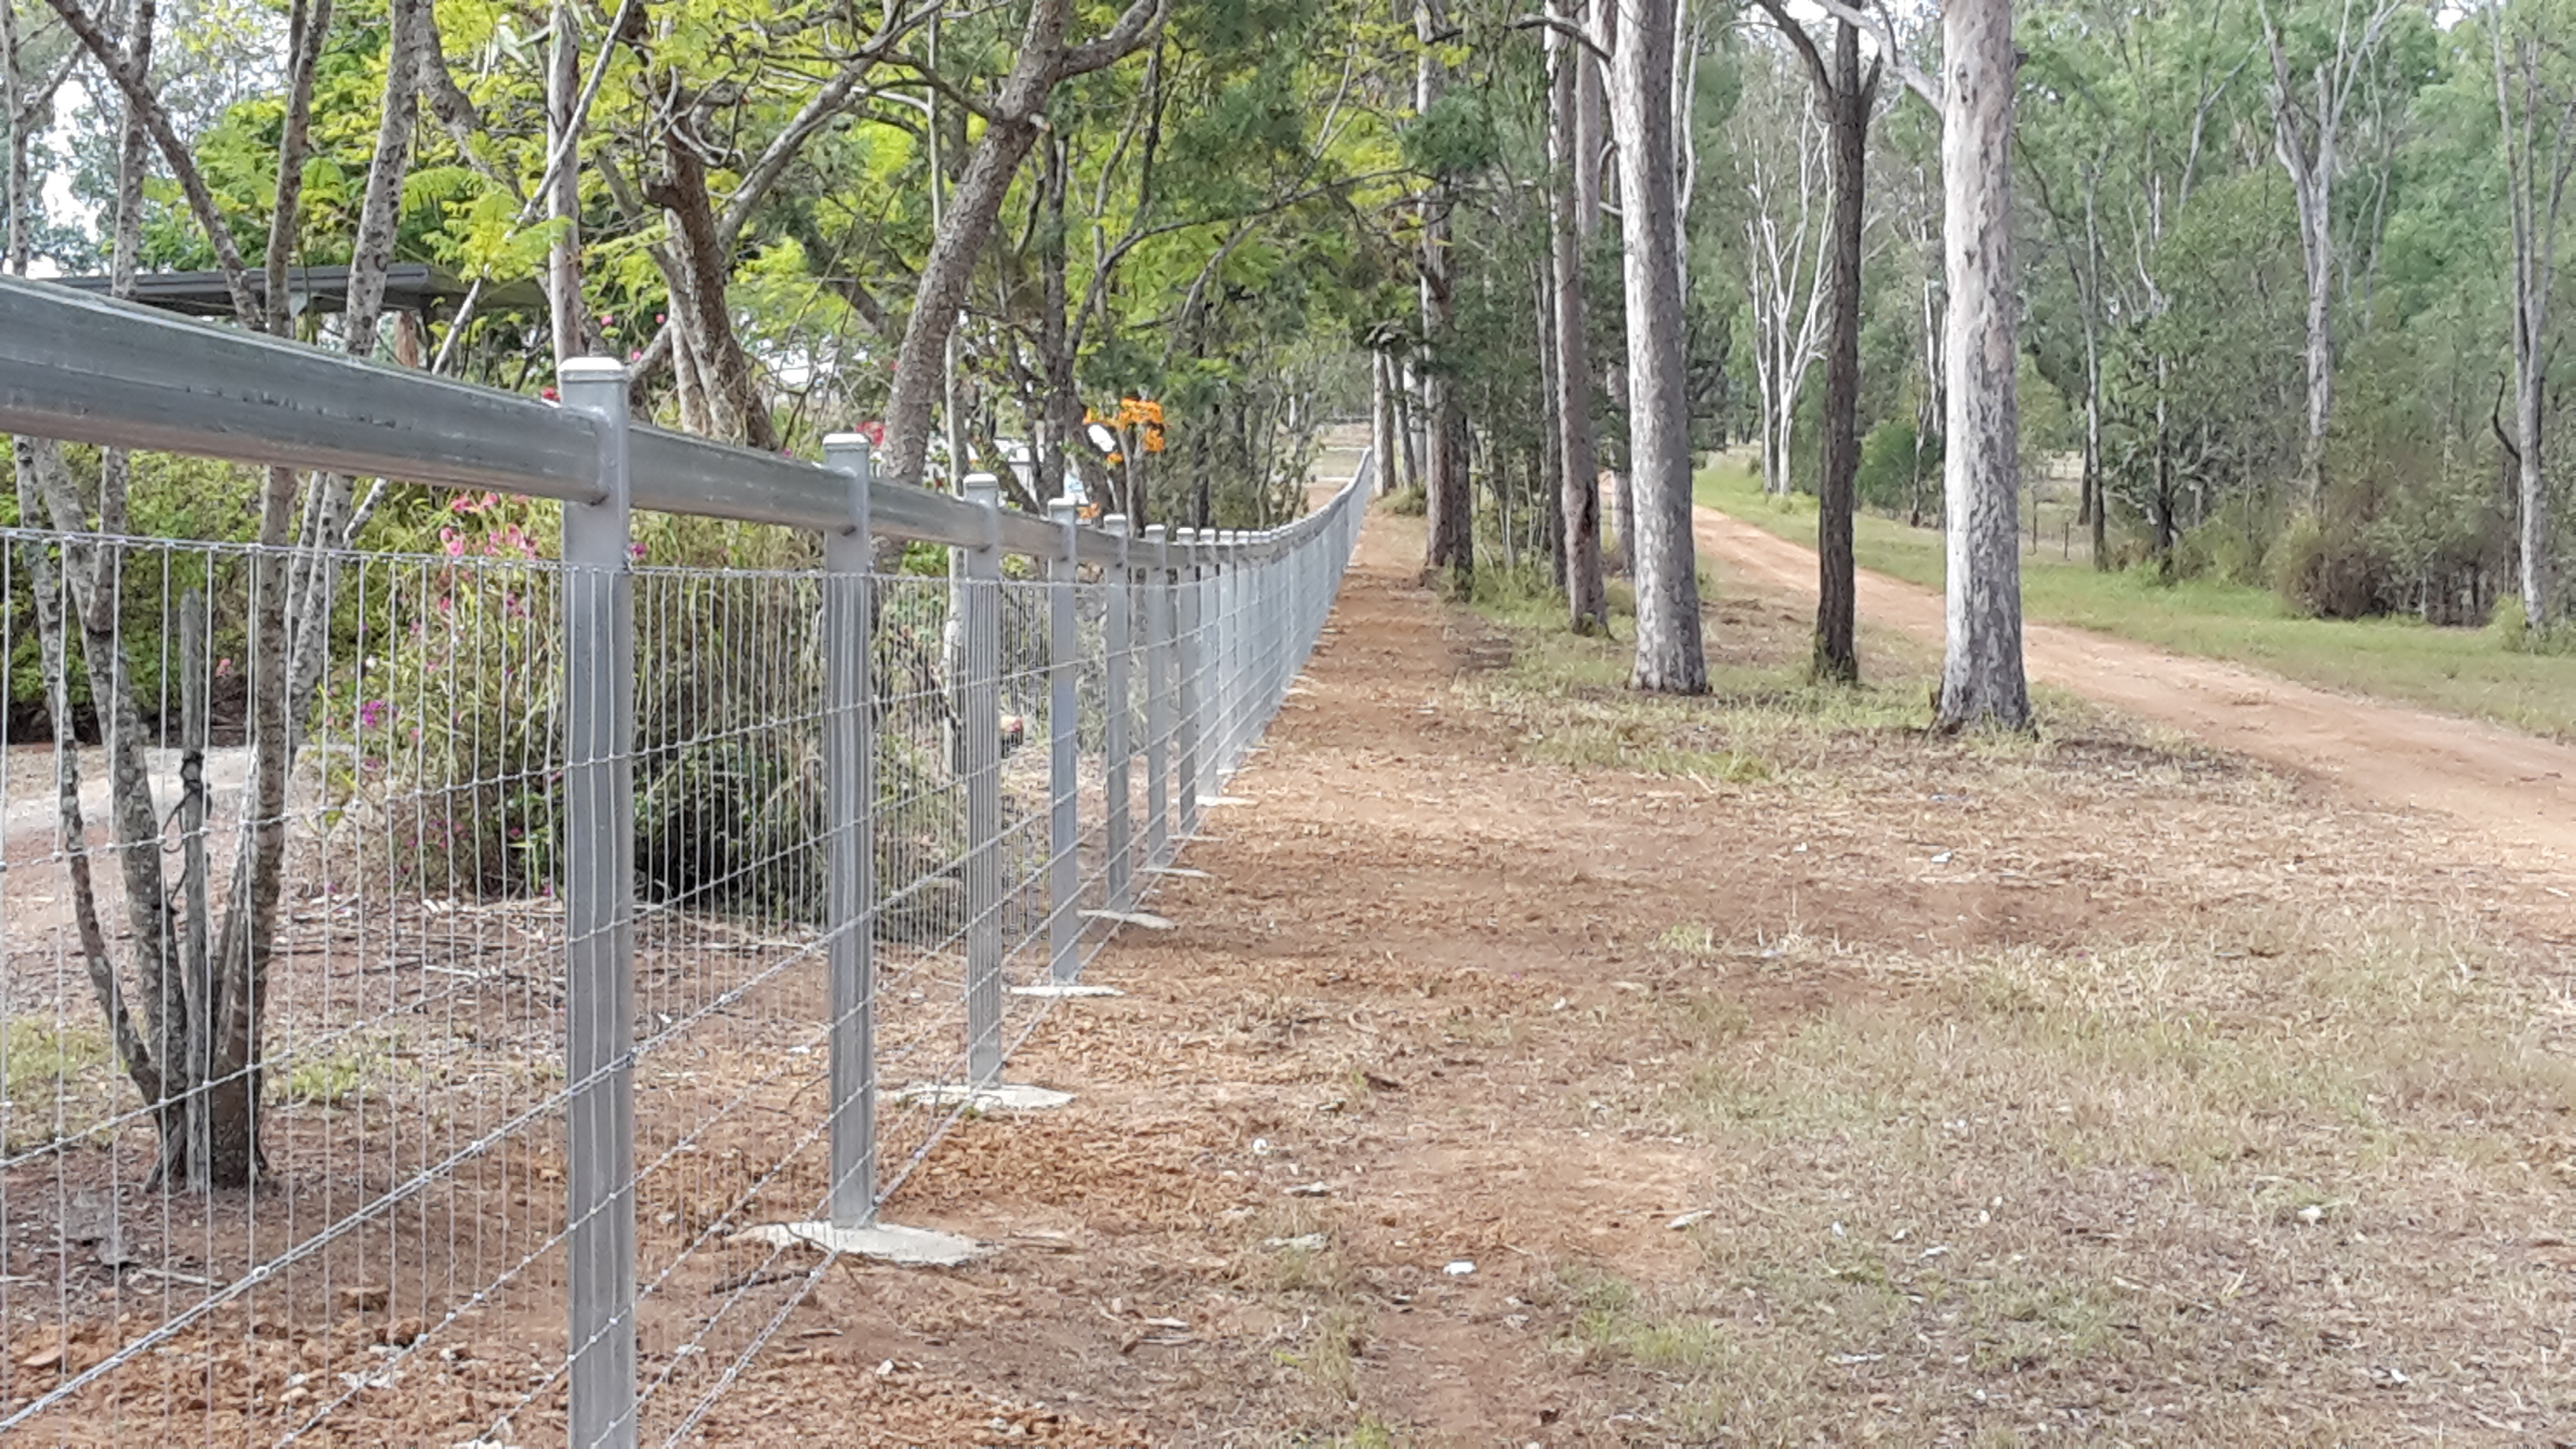 Steel fencing with mesh